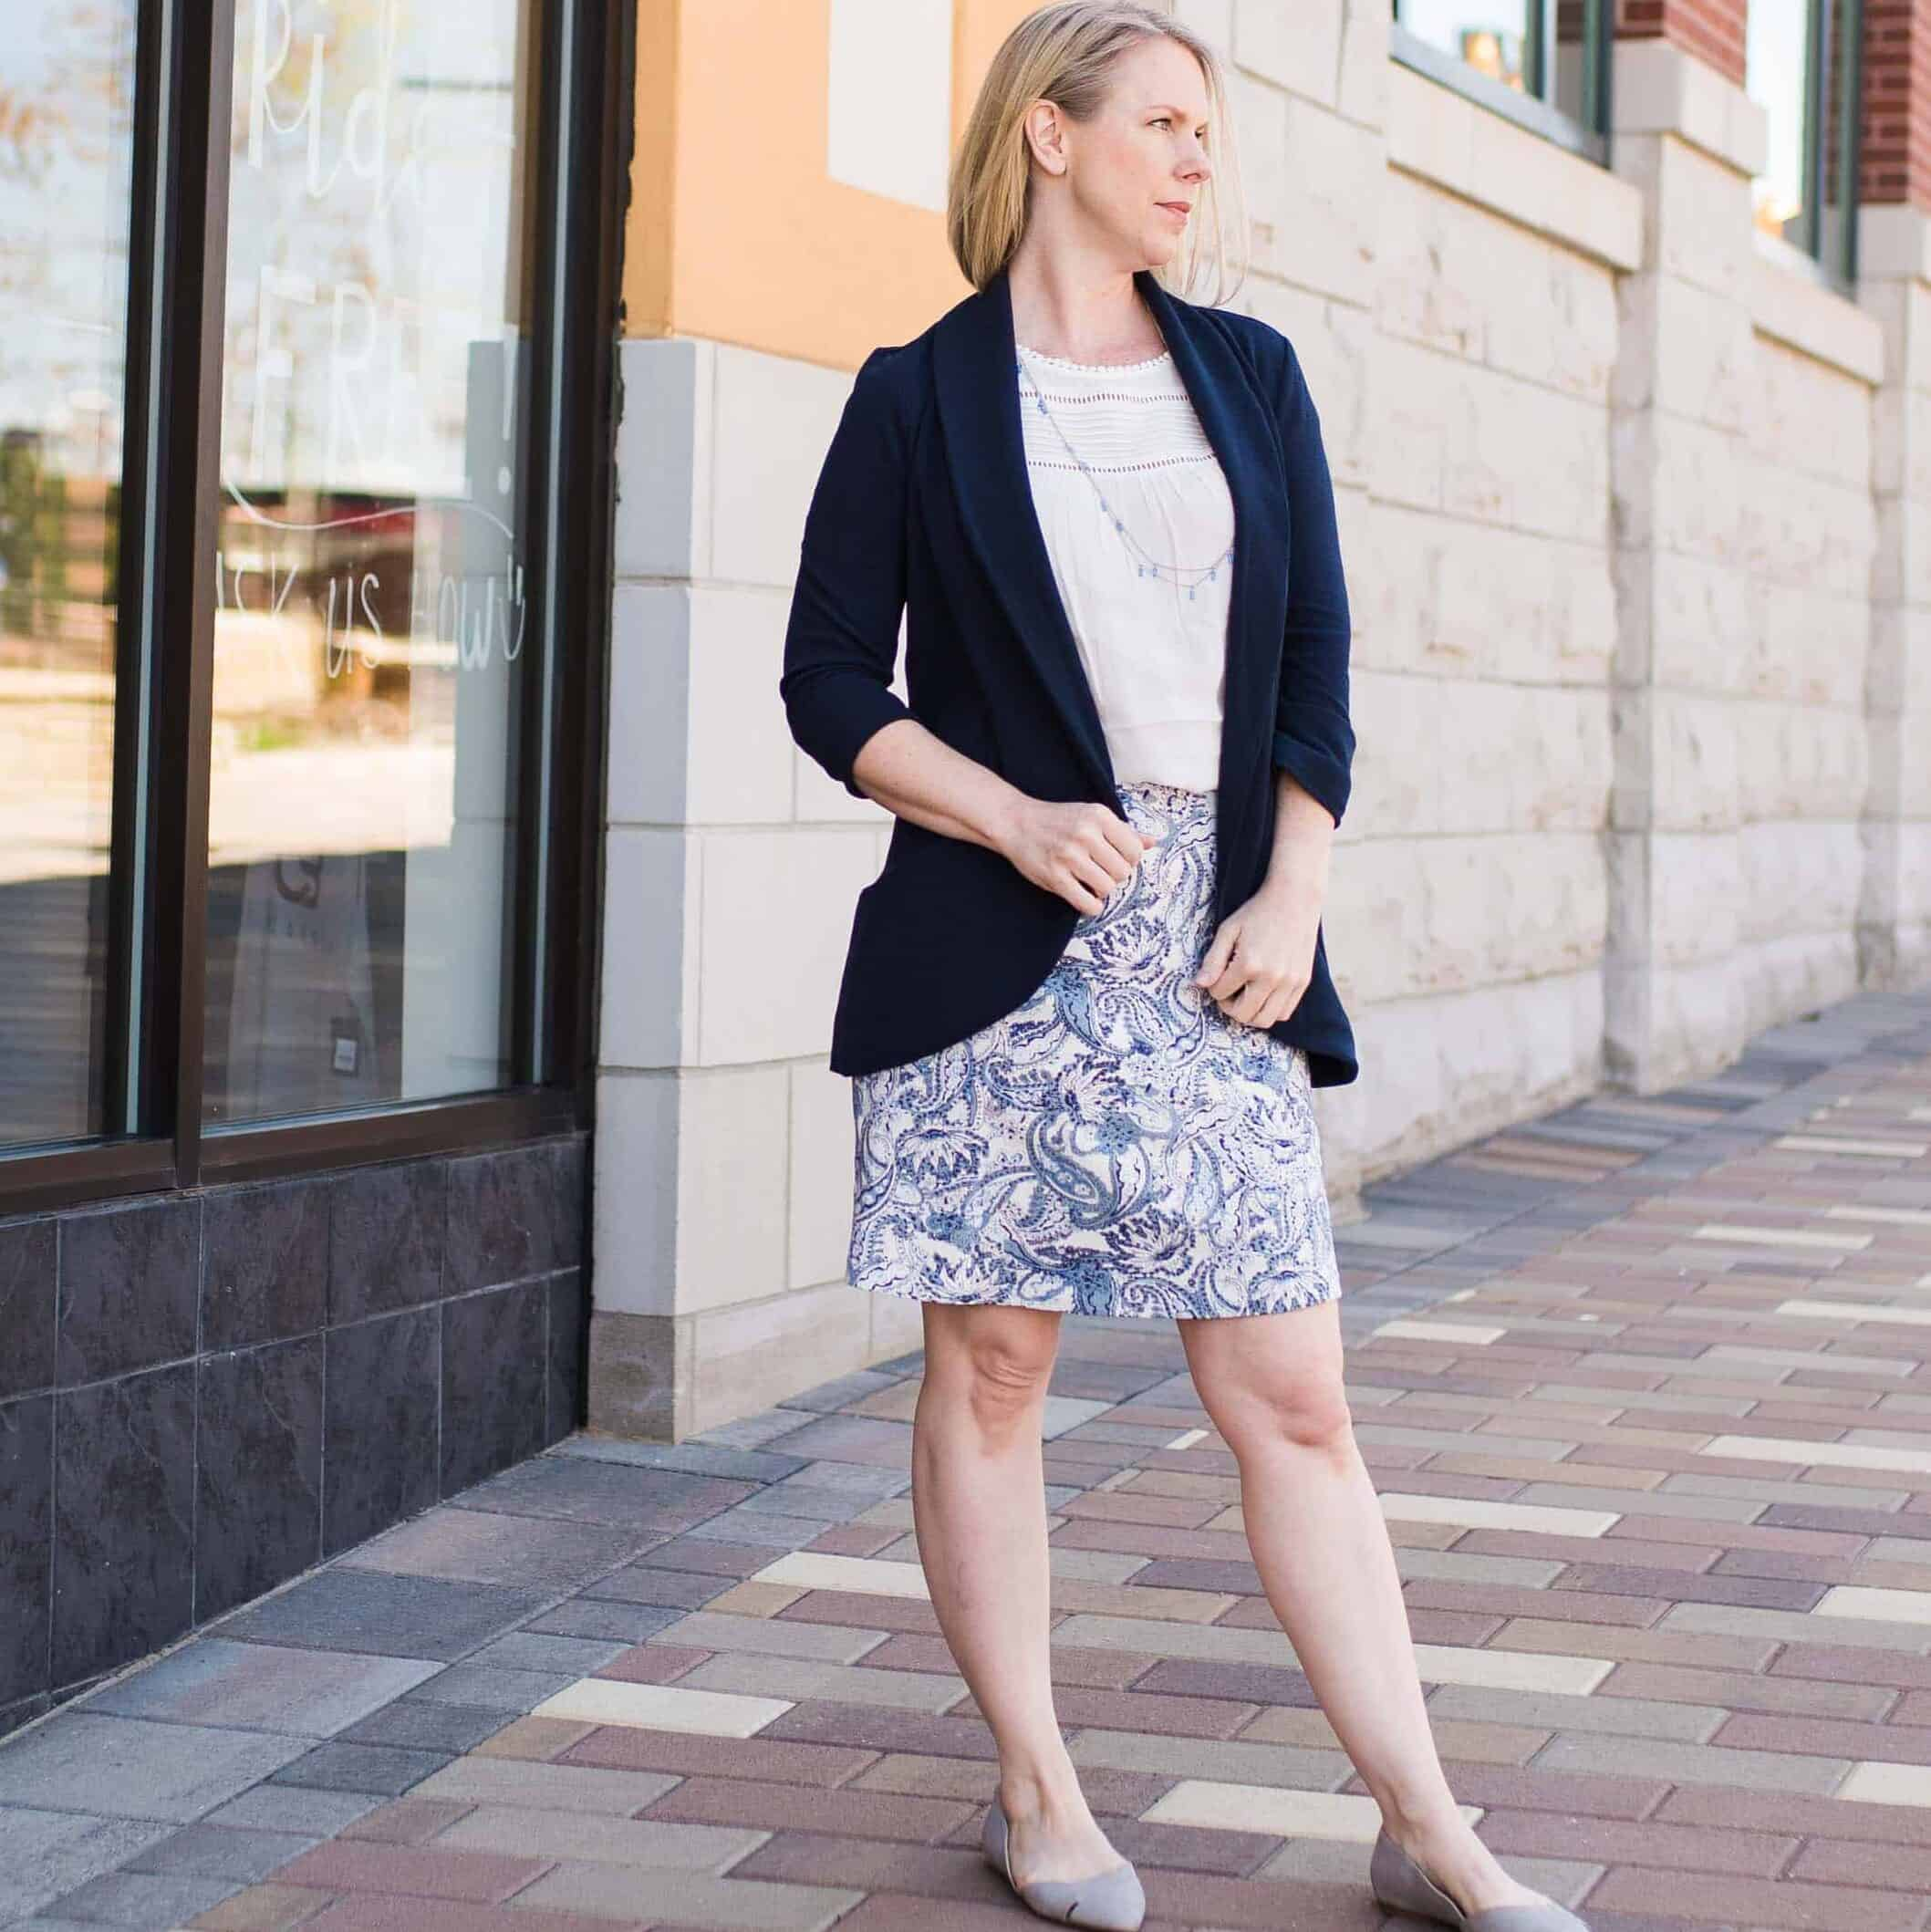 Blazer with Stitch Fix outfit as graduation outfit for moms